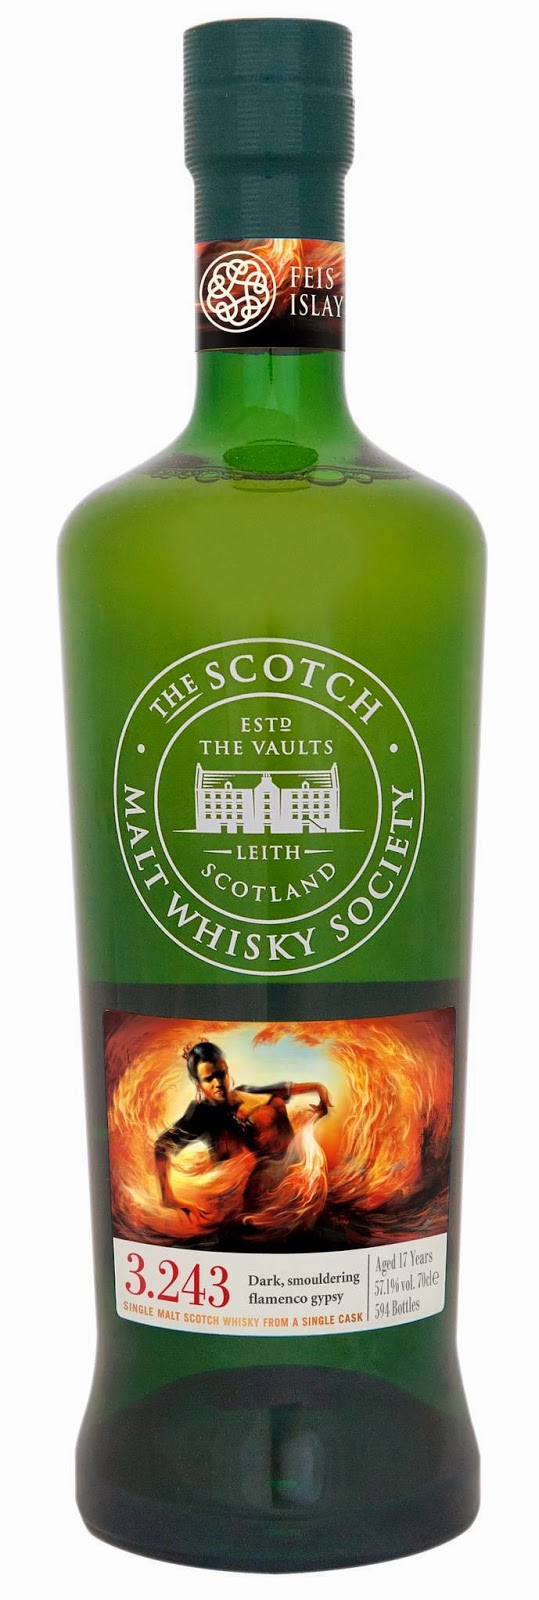 SMWS 3.243 'Dark, smouldering flamenco gypsy